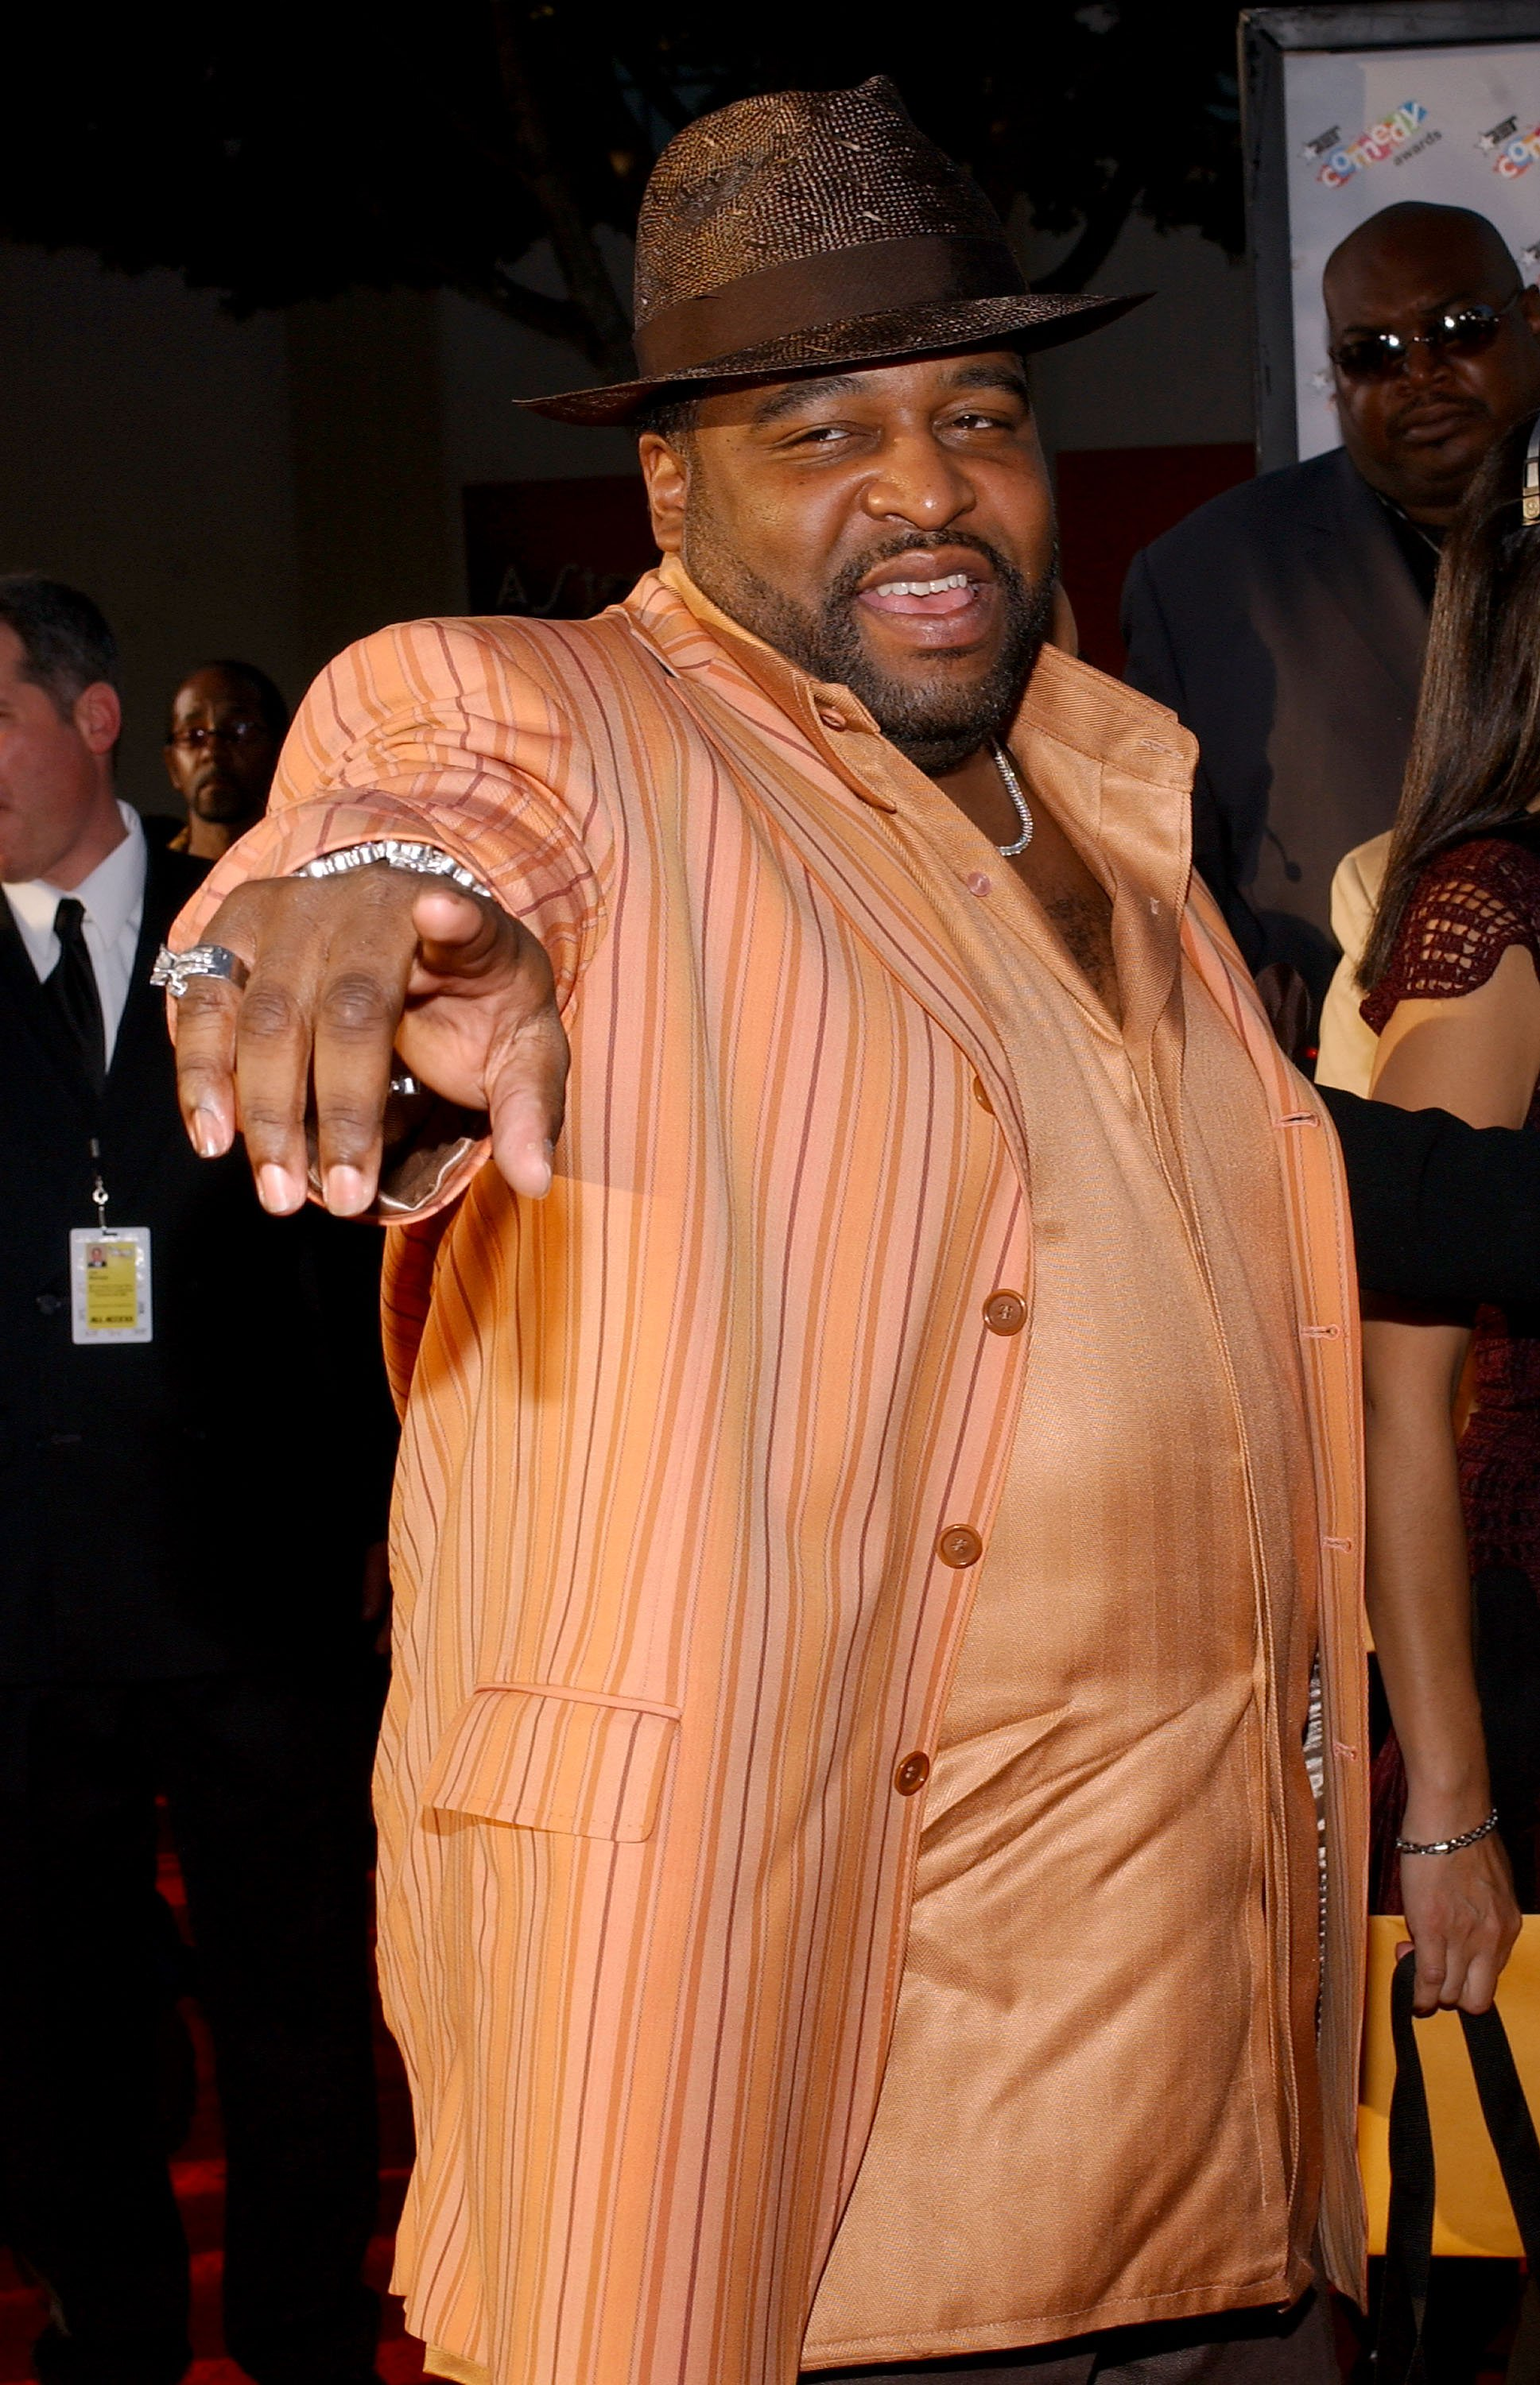 Singer Gerald Levert at the Pasadena Civic Auditorium September 28, 2004 | Source: Getty Images